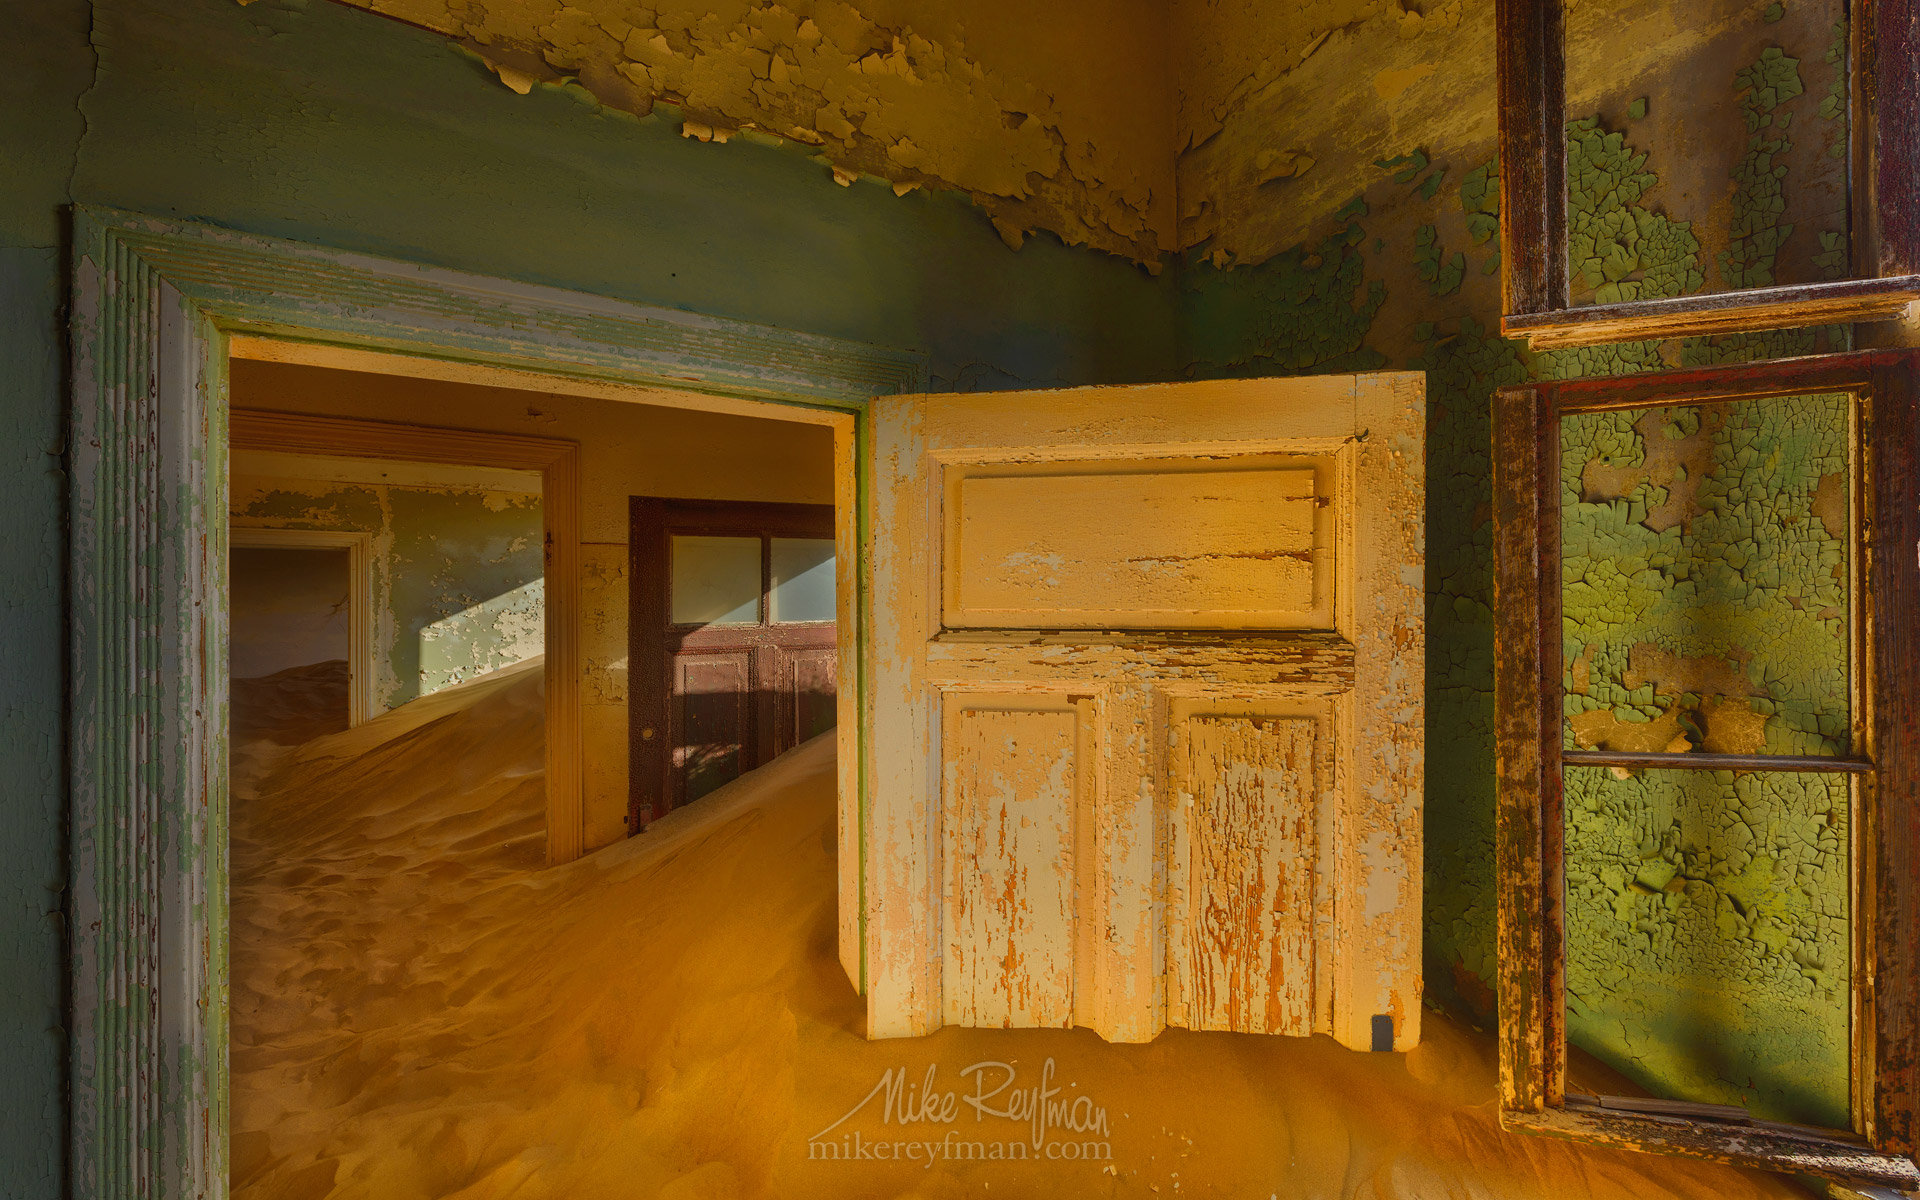 Patterns of Time. Kolmanskop Ghost town, Namib Desert, Southern Namibia. KN1-MR10N1228 - Kolmanskop Ghost Town, Namib Desert, Southern Namibia - Mike Reyfman Photography